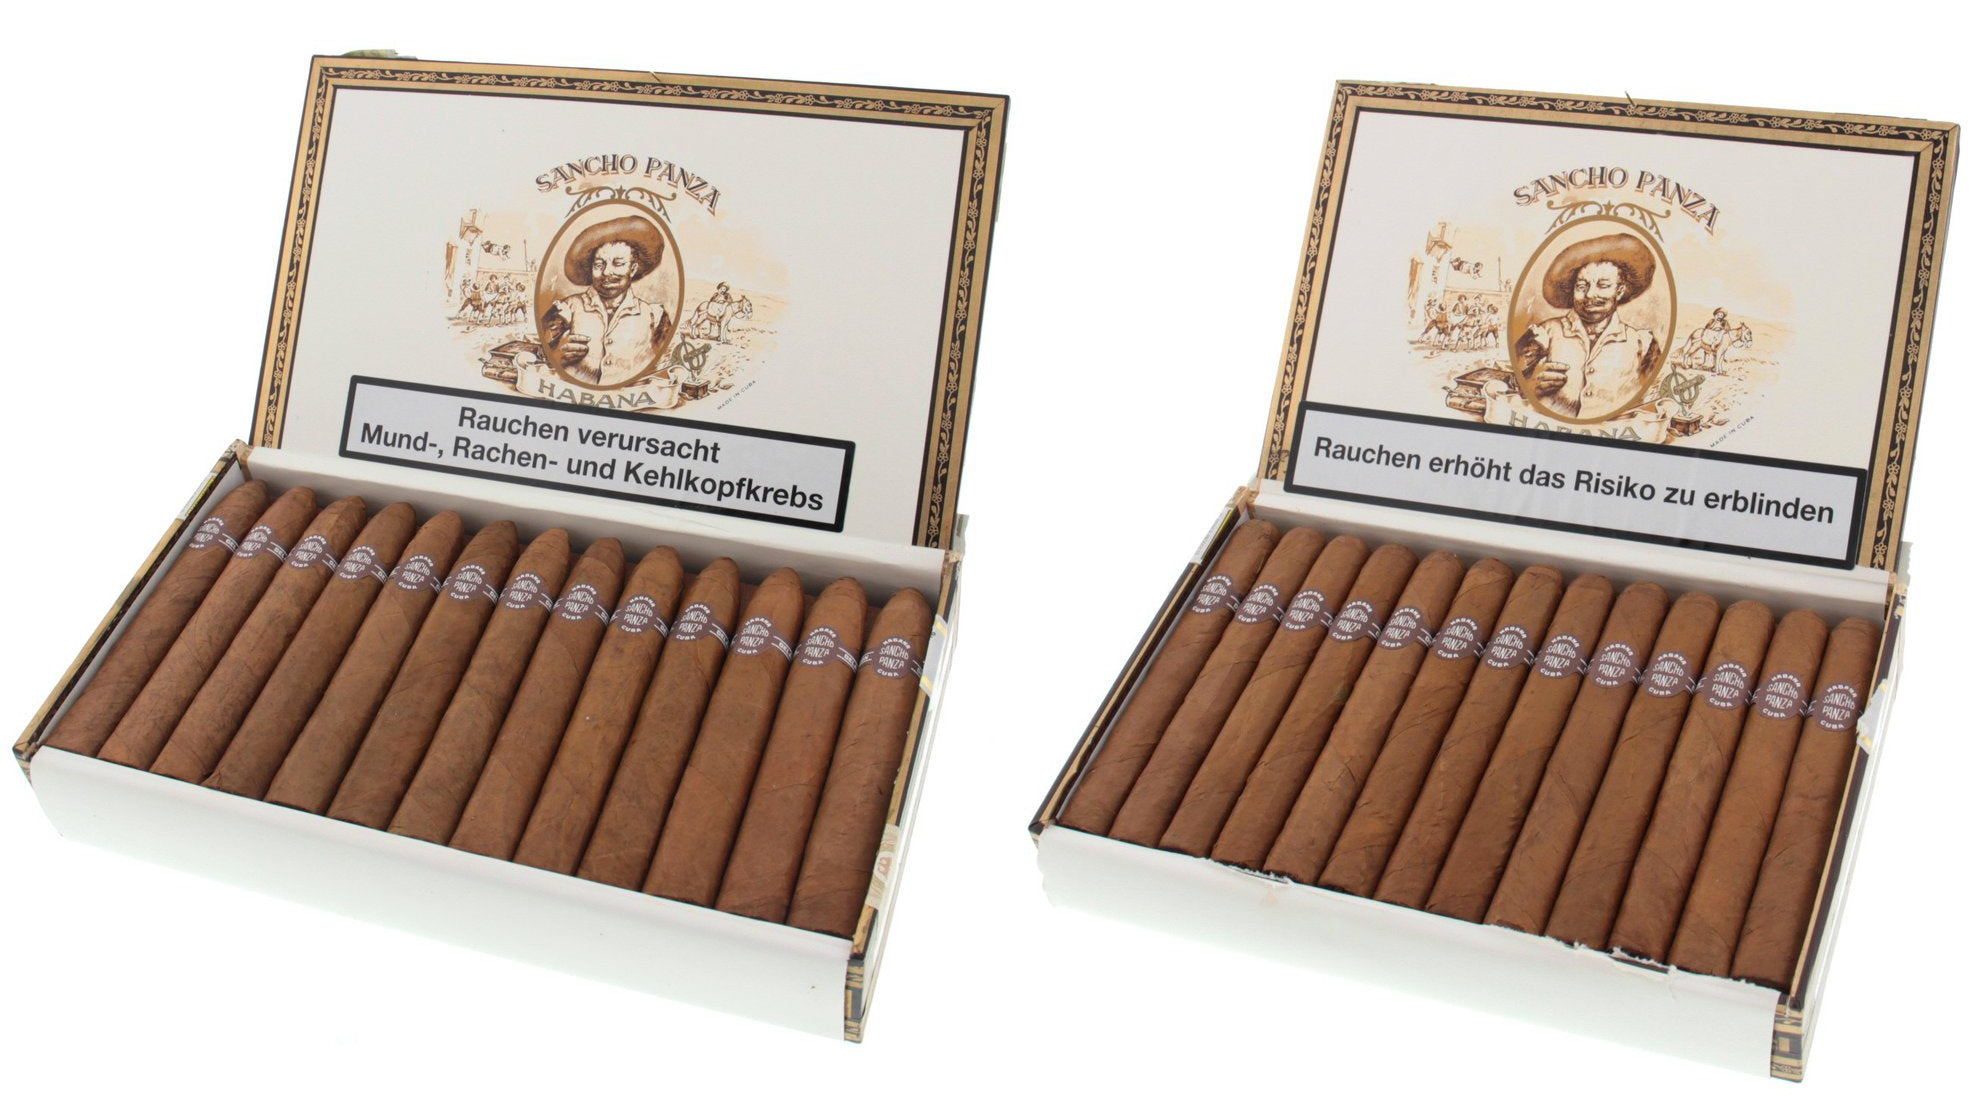 Sancho Panza cuban cigars for sale online